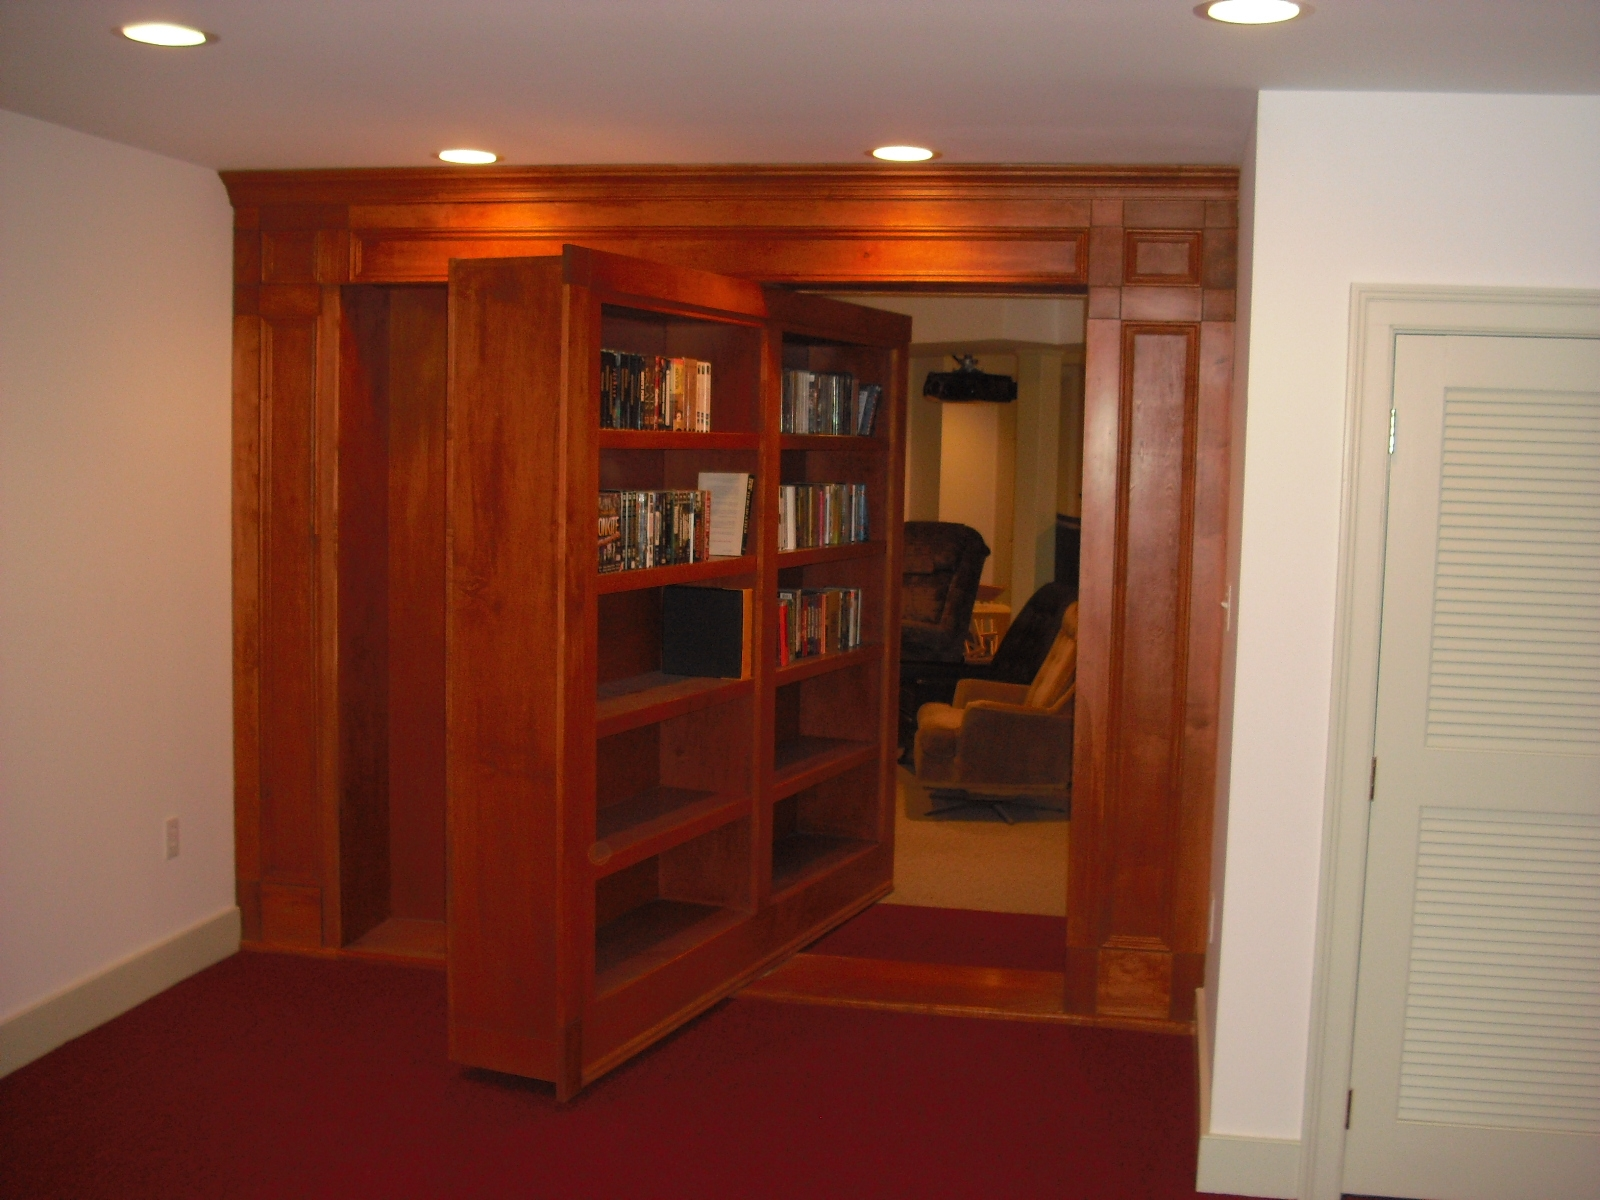 How To Make Secret Bookcase Door Doherty House Intended For Large Bookcase Plans (View 10 of 15)